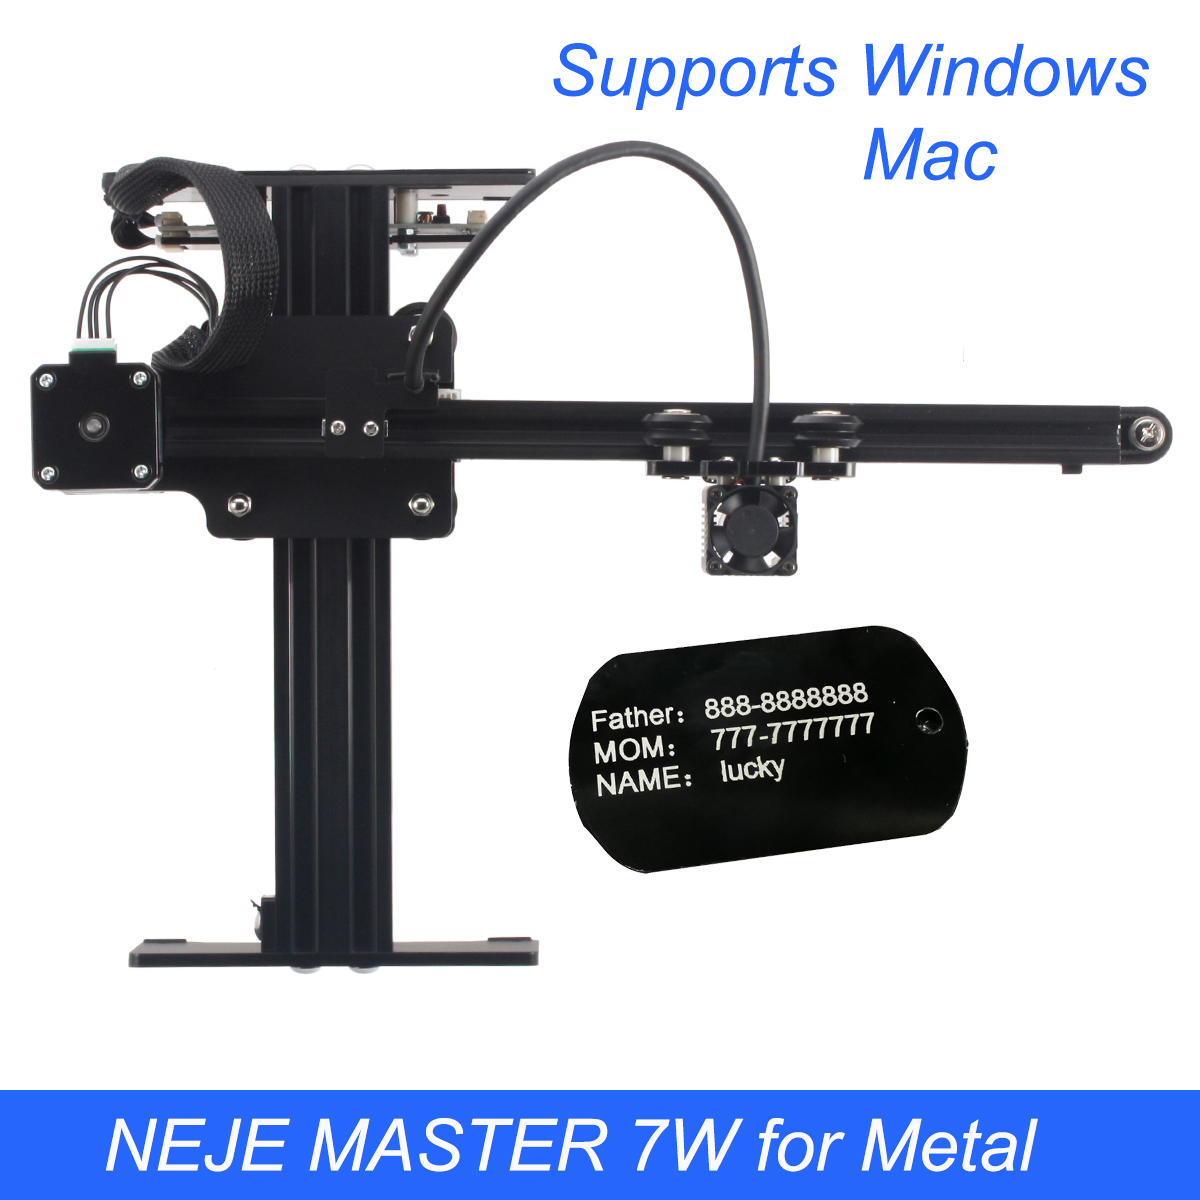 NEJE MASTER 3500mW /7W Laser Engraving Machine DIY Mini CNC Cutting Wood Router Desktop Engraver for Metal/Wood/Plastics-in Wood Routers from Tools